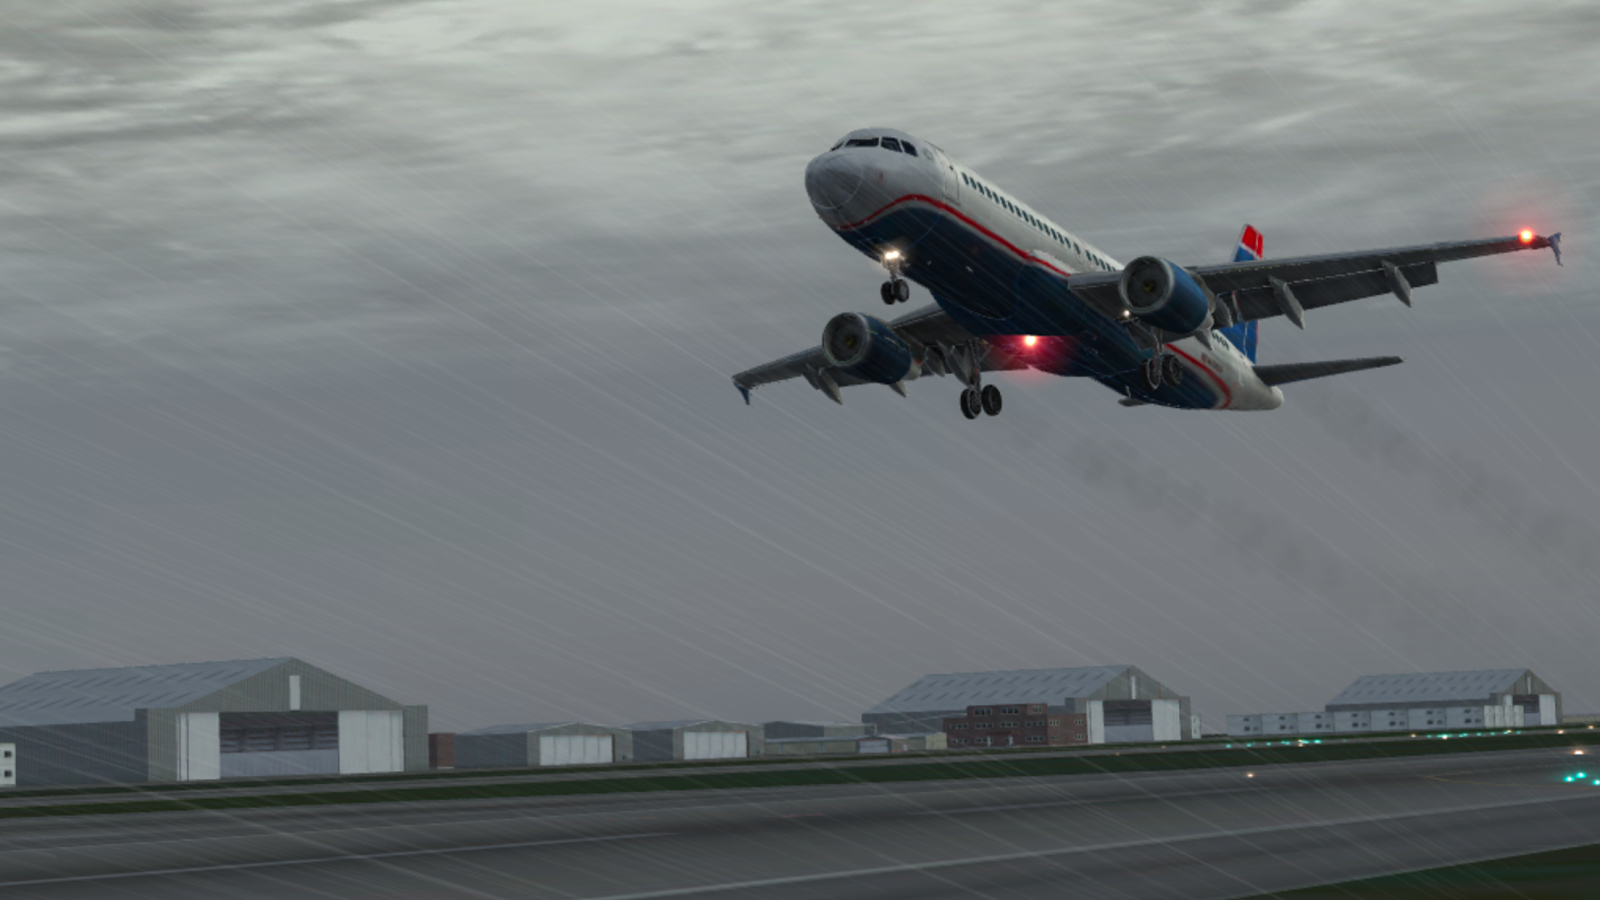 Flight Simulator X Wallpaper: X-Plane 10 Flight Simulator Now Released.